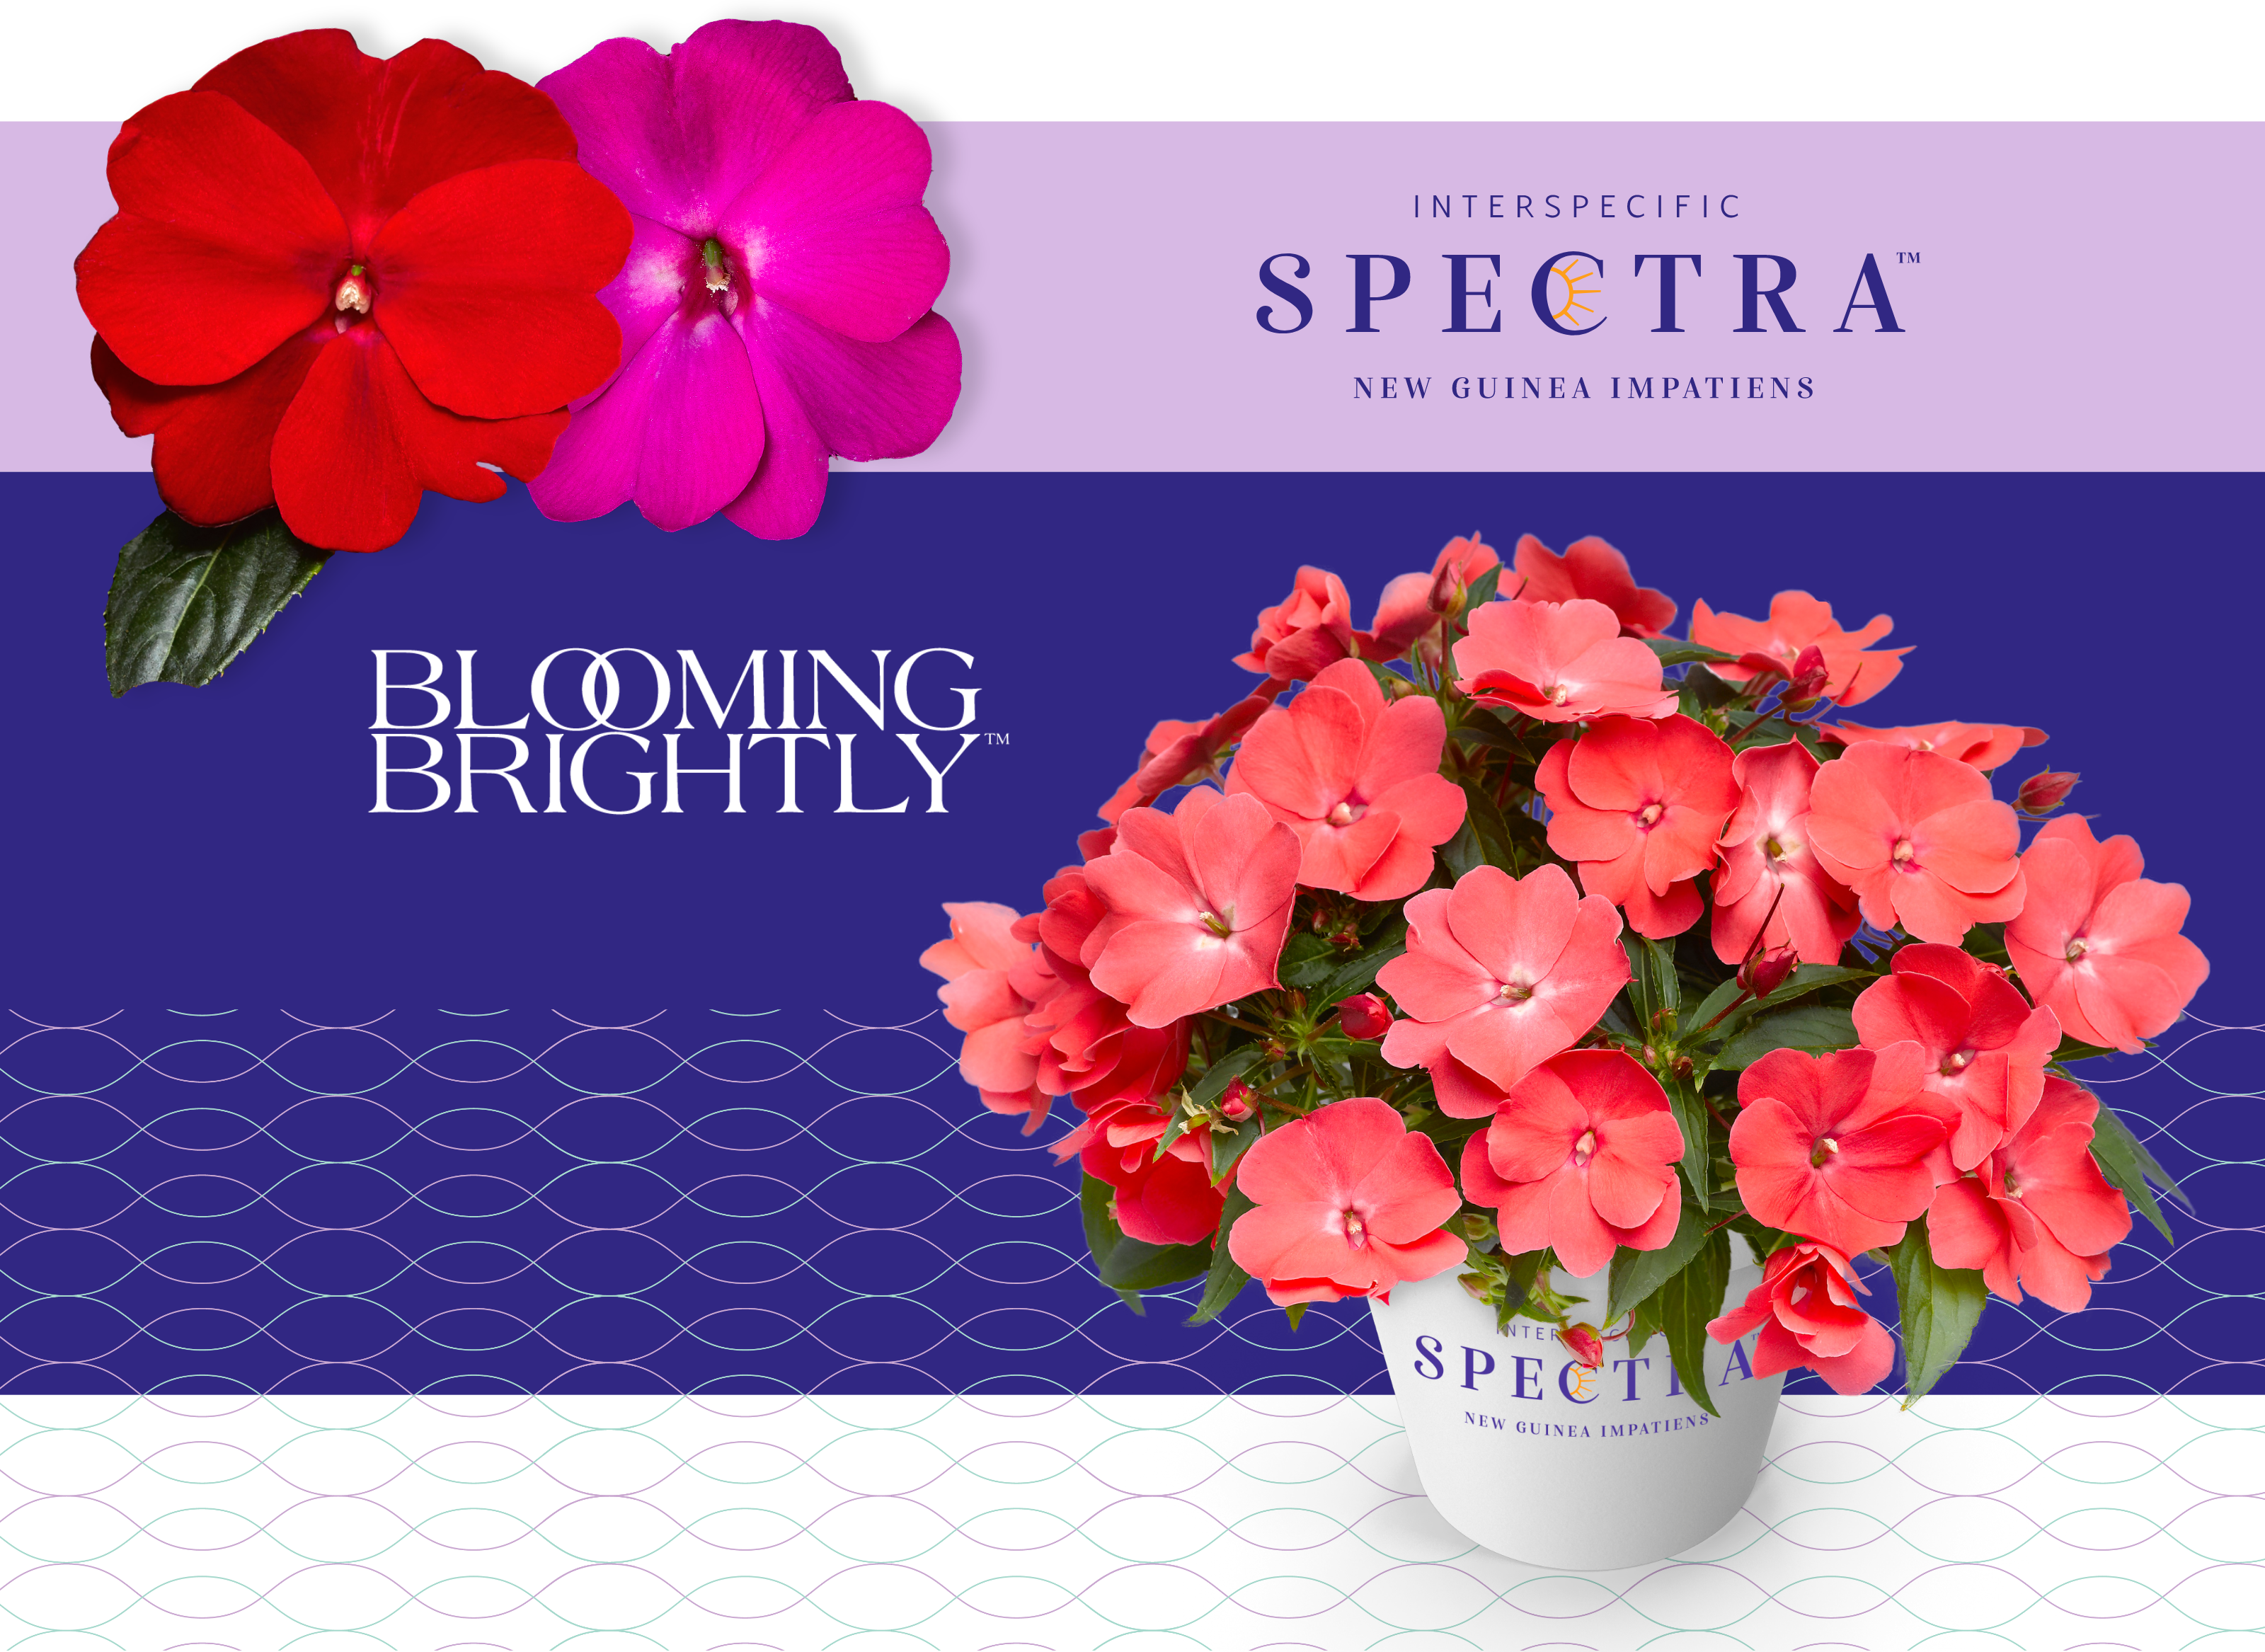 spectra product images with branding